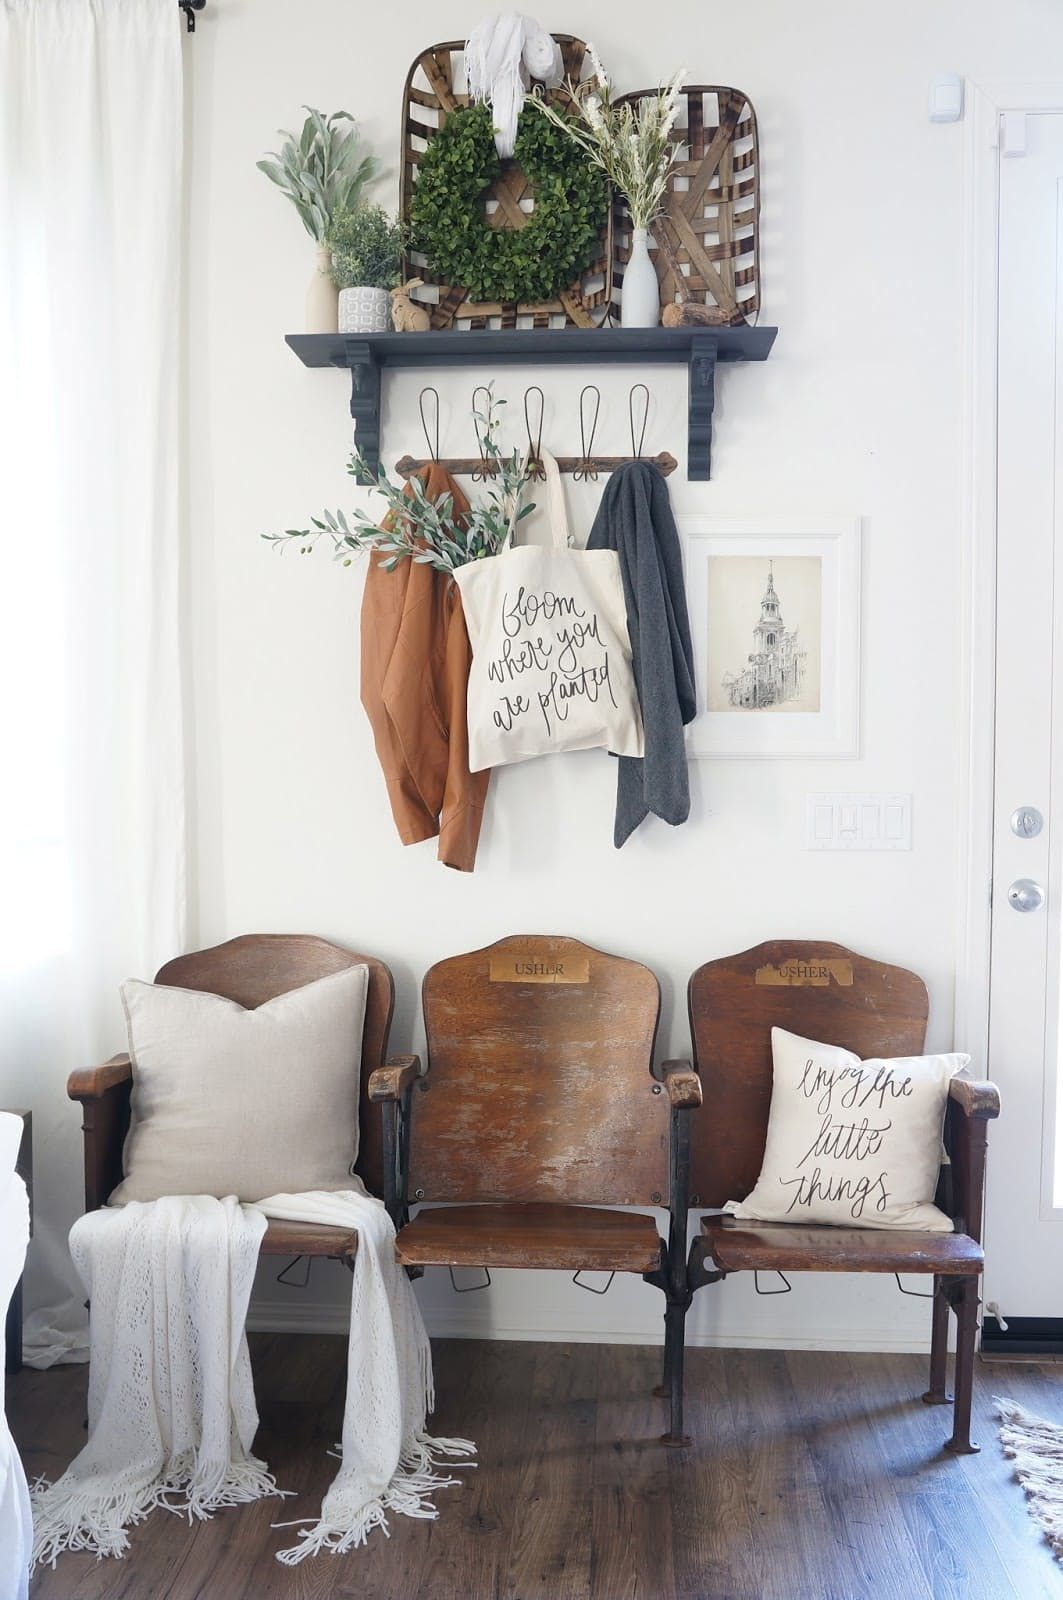 Entryway Design Ideas to Add Personality   Theater seats, Pillows ...